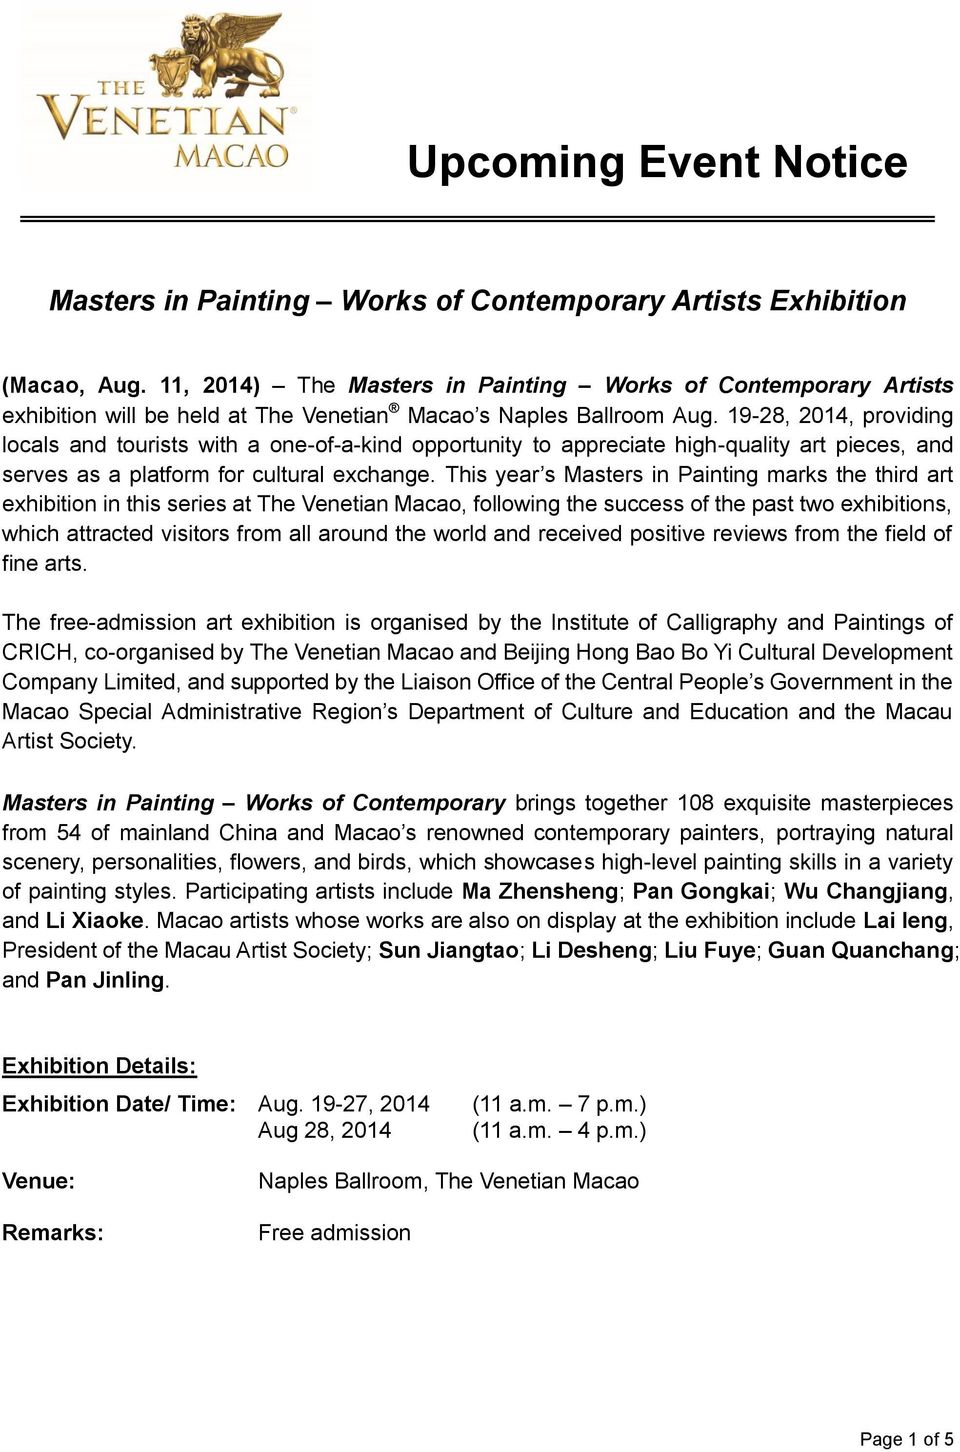 19-28, 2014, providing locals and tourists with a one-of-a-kind opportunity to appreciate high-quality art pieces, and serves as a platform for cultural exchange.